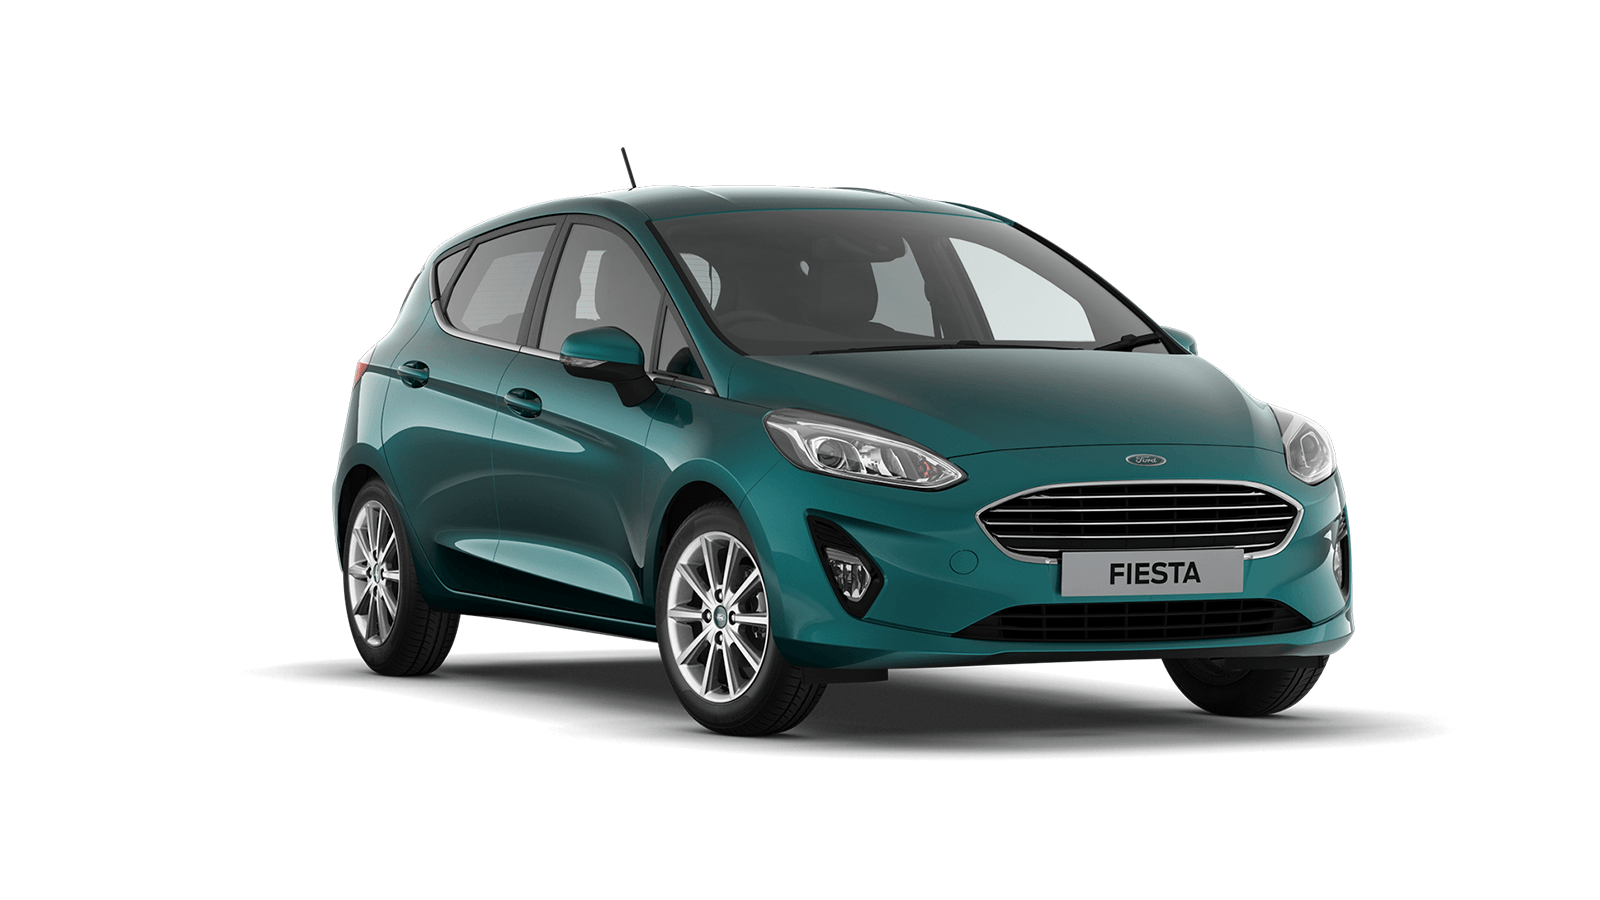 https://www.dealerinternet.co.uk/images/FIESTA%20B299/2019/5%20Door/Titanium/BLUE-WAVE.png